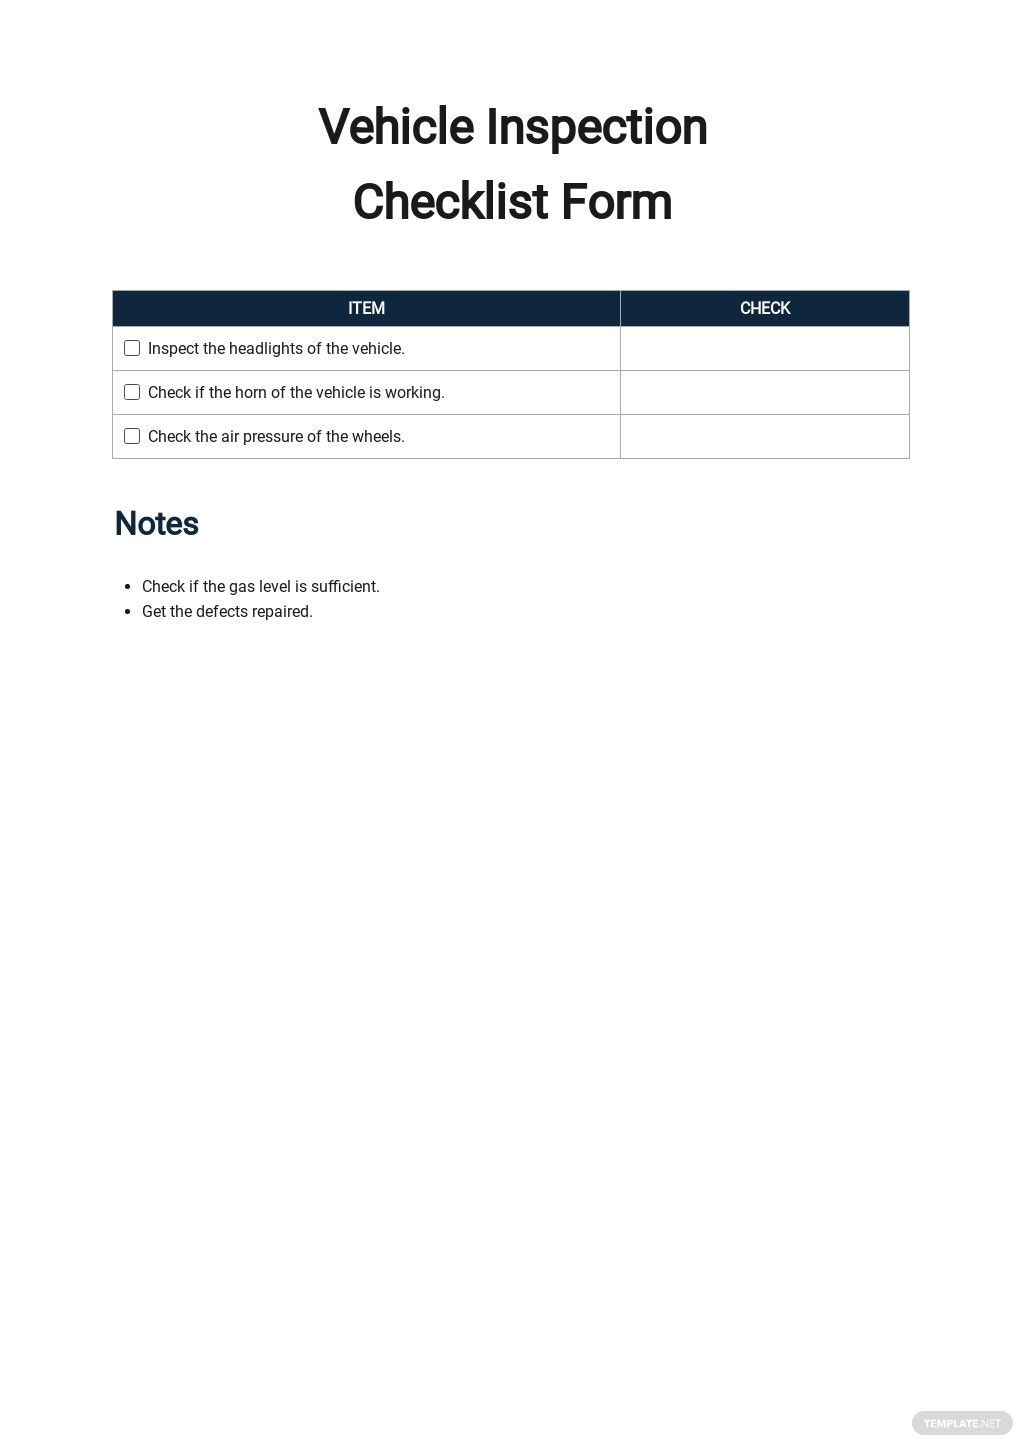 Vehicle Inspection Checklist Form Template